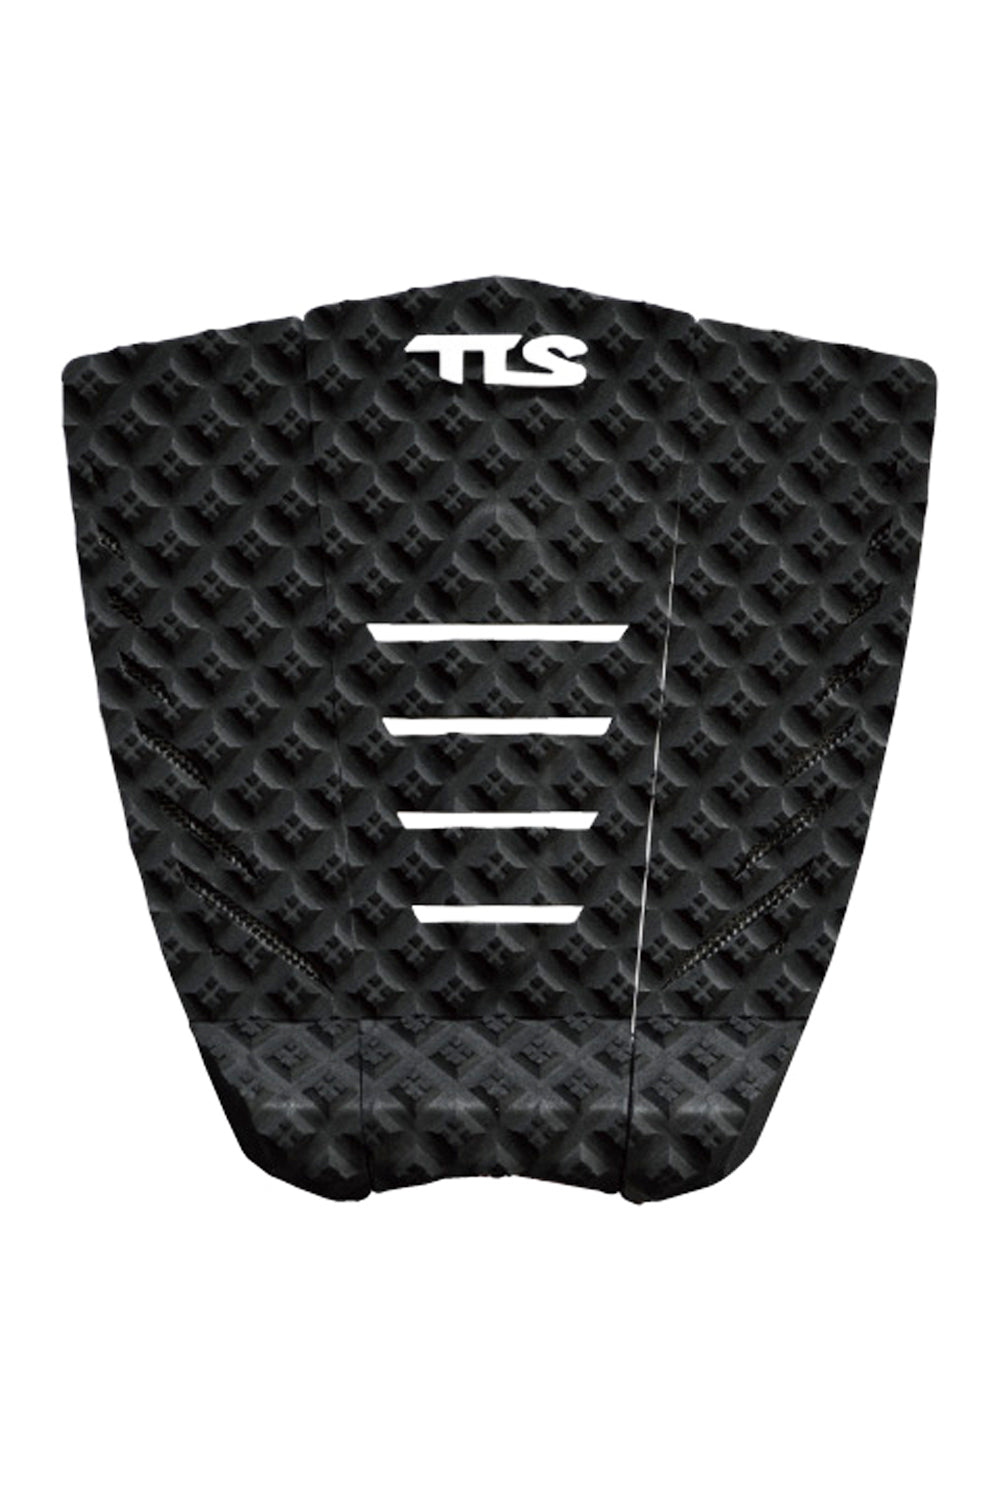 Tools Carbon 19 Grip Pad Grip Pad